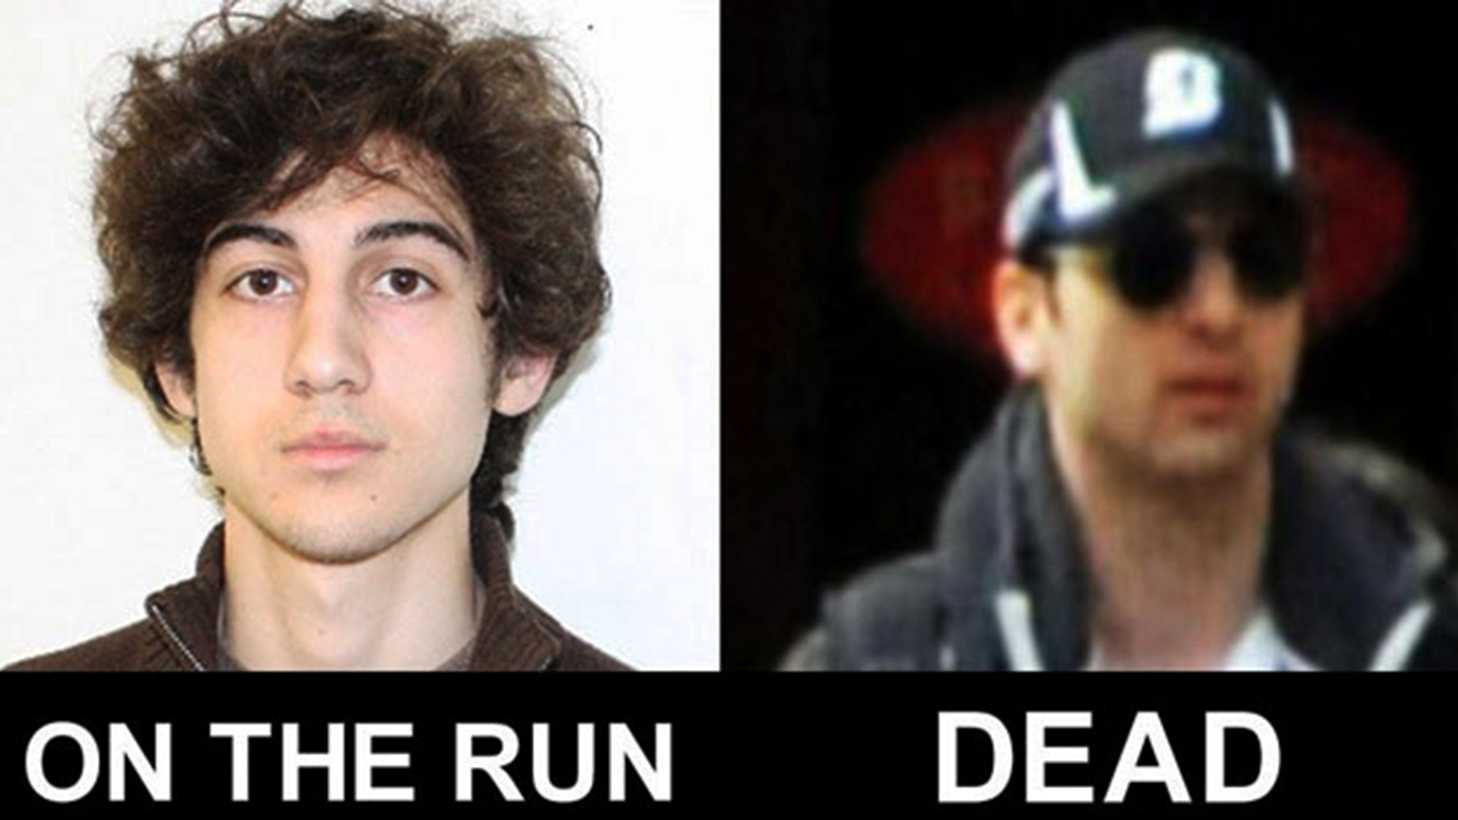 Dzhokhar Tsarnaev, left, is on the run. His brother, Tamerlan Tsarnaev, right, is dead.